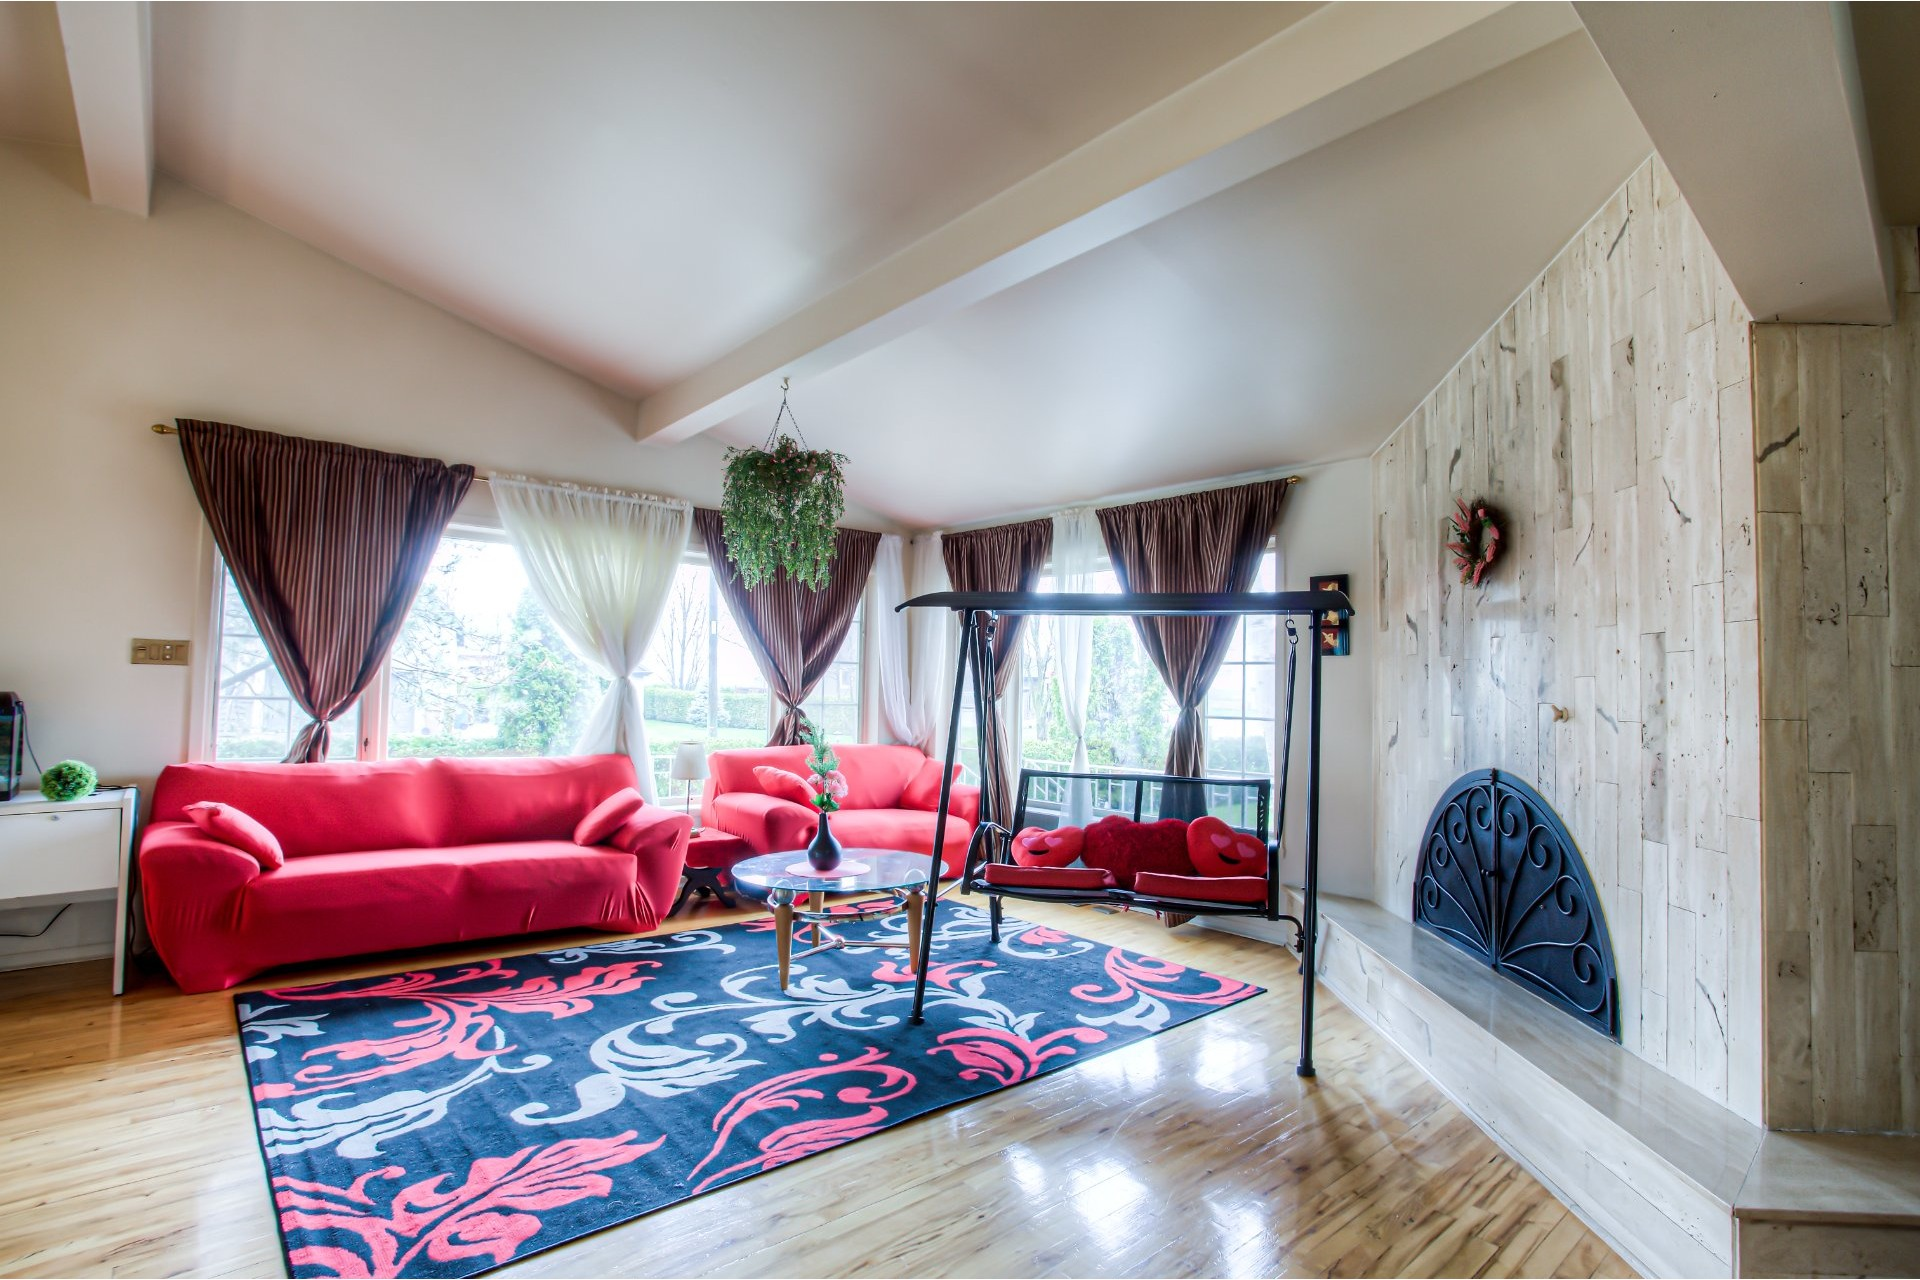 image 6 - House For sale Sainte-Anne-des-Plaines - 7 rooms